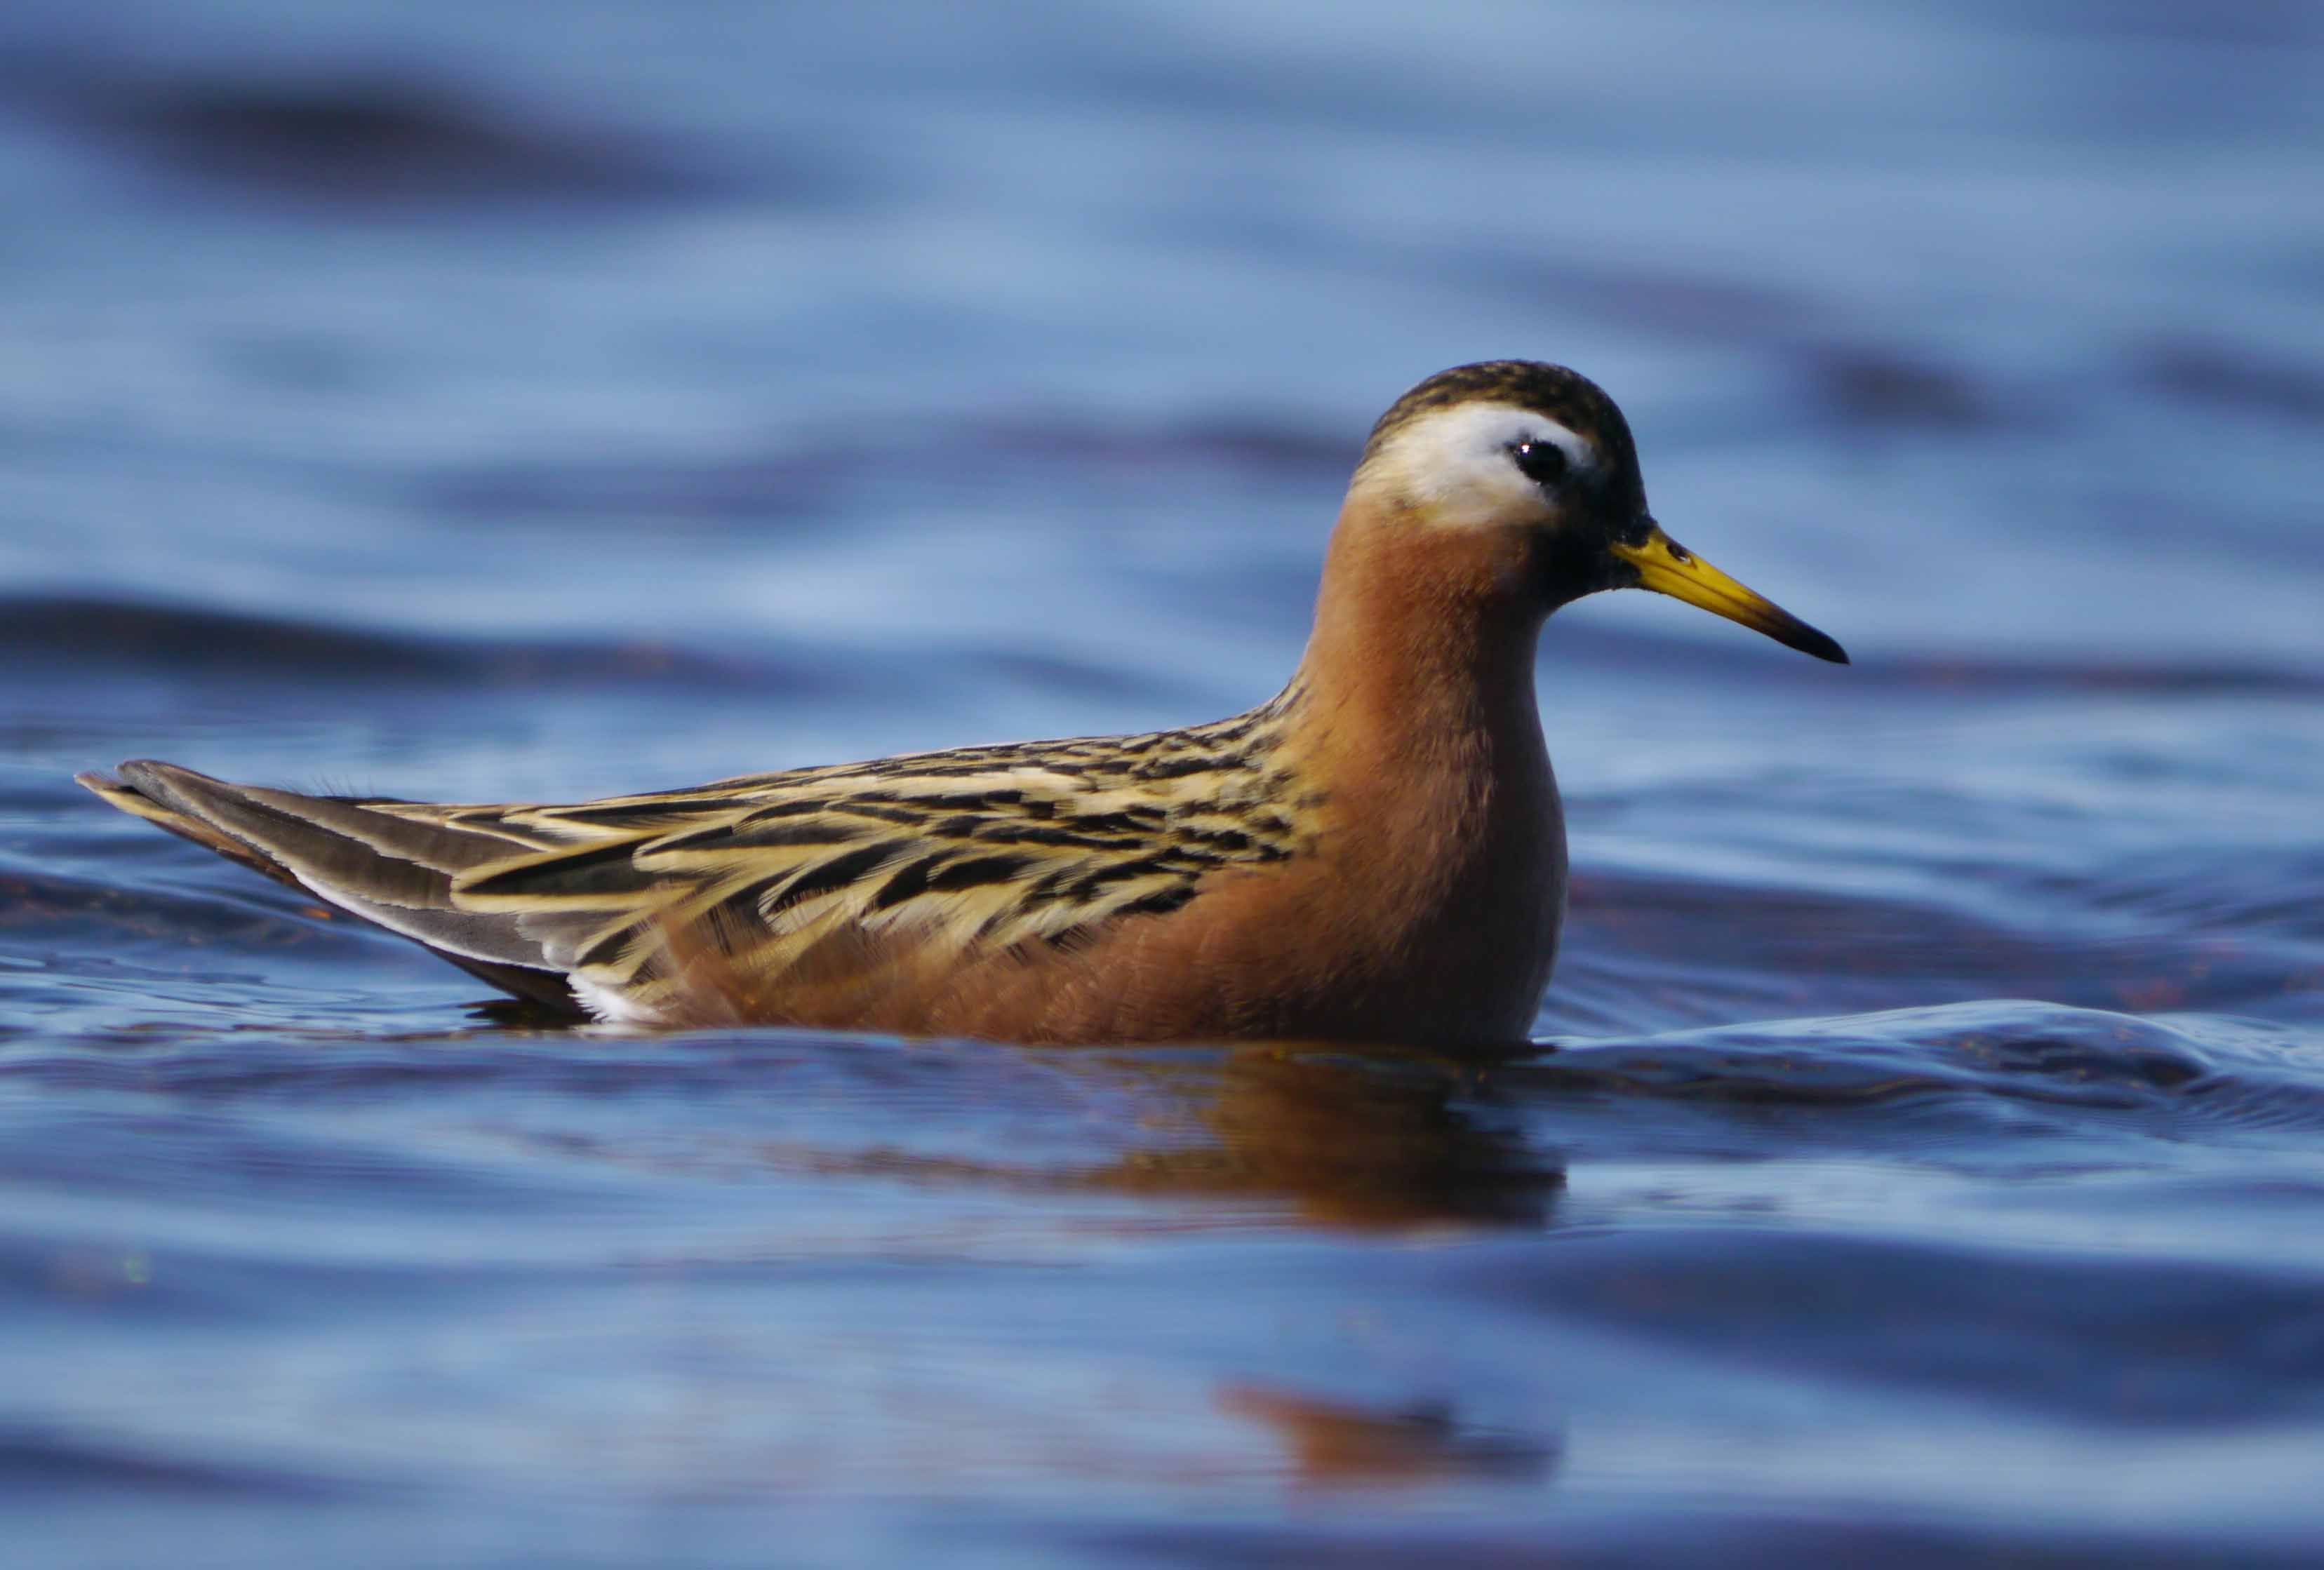 red-grey-phalarope-lake-peykul-neyskoye-001-12-june-2011-martin-j-mcgill.jpg (3312×2238)